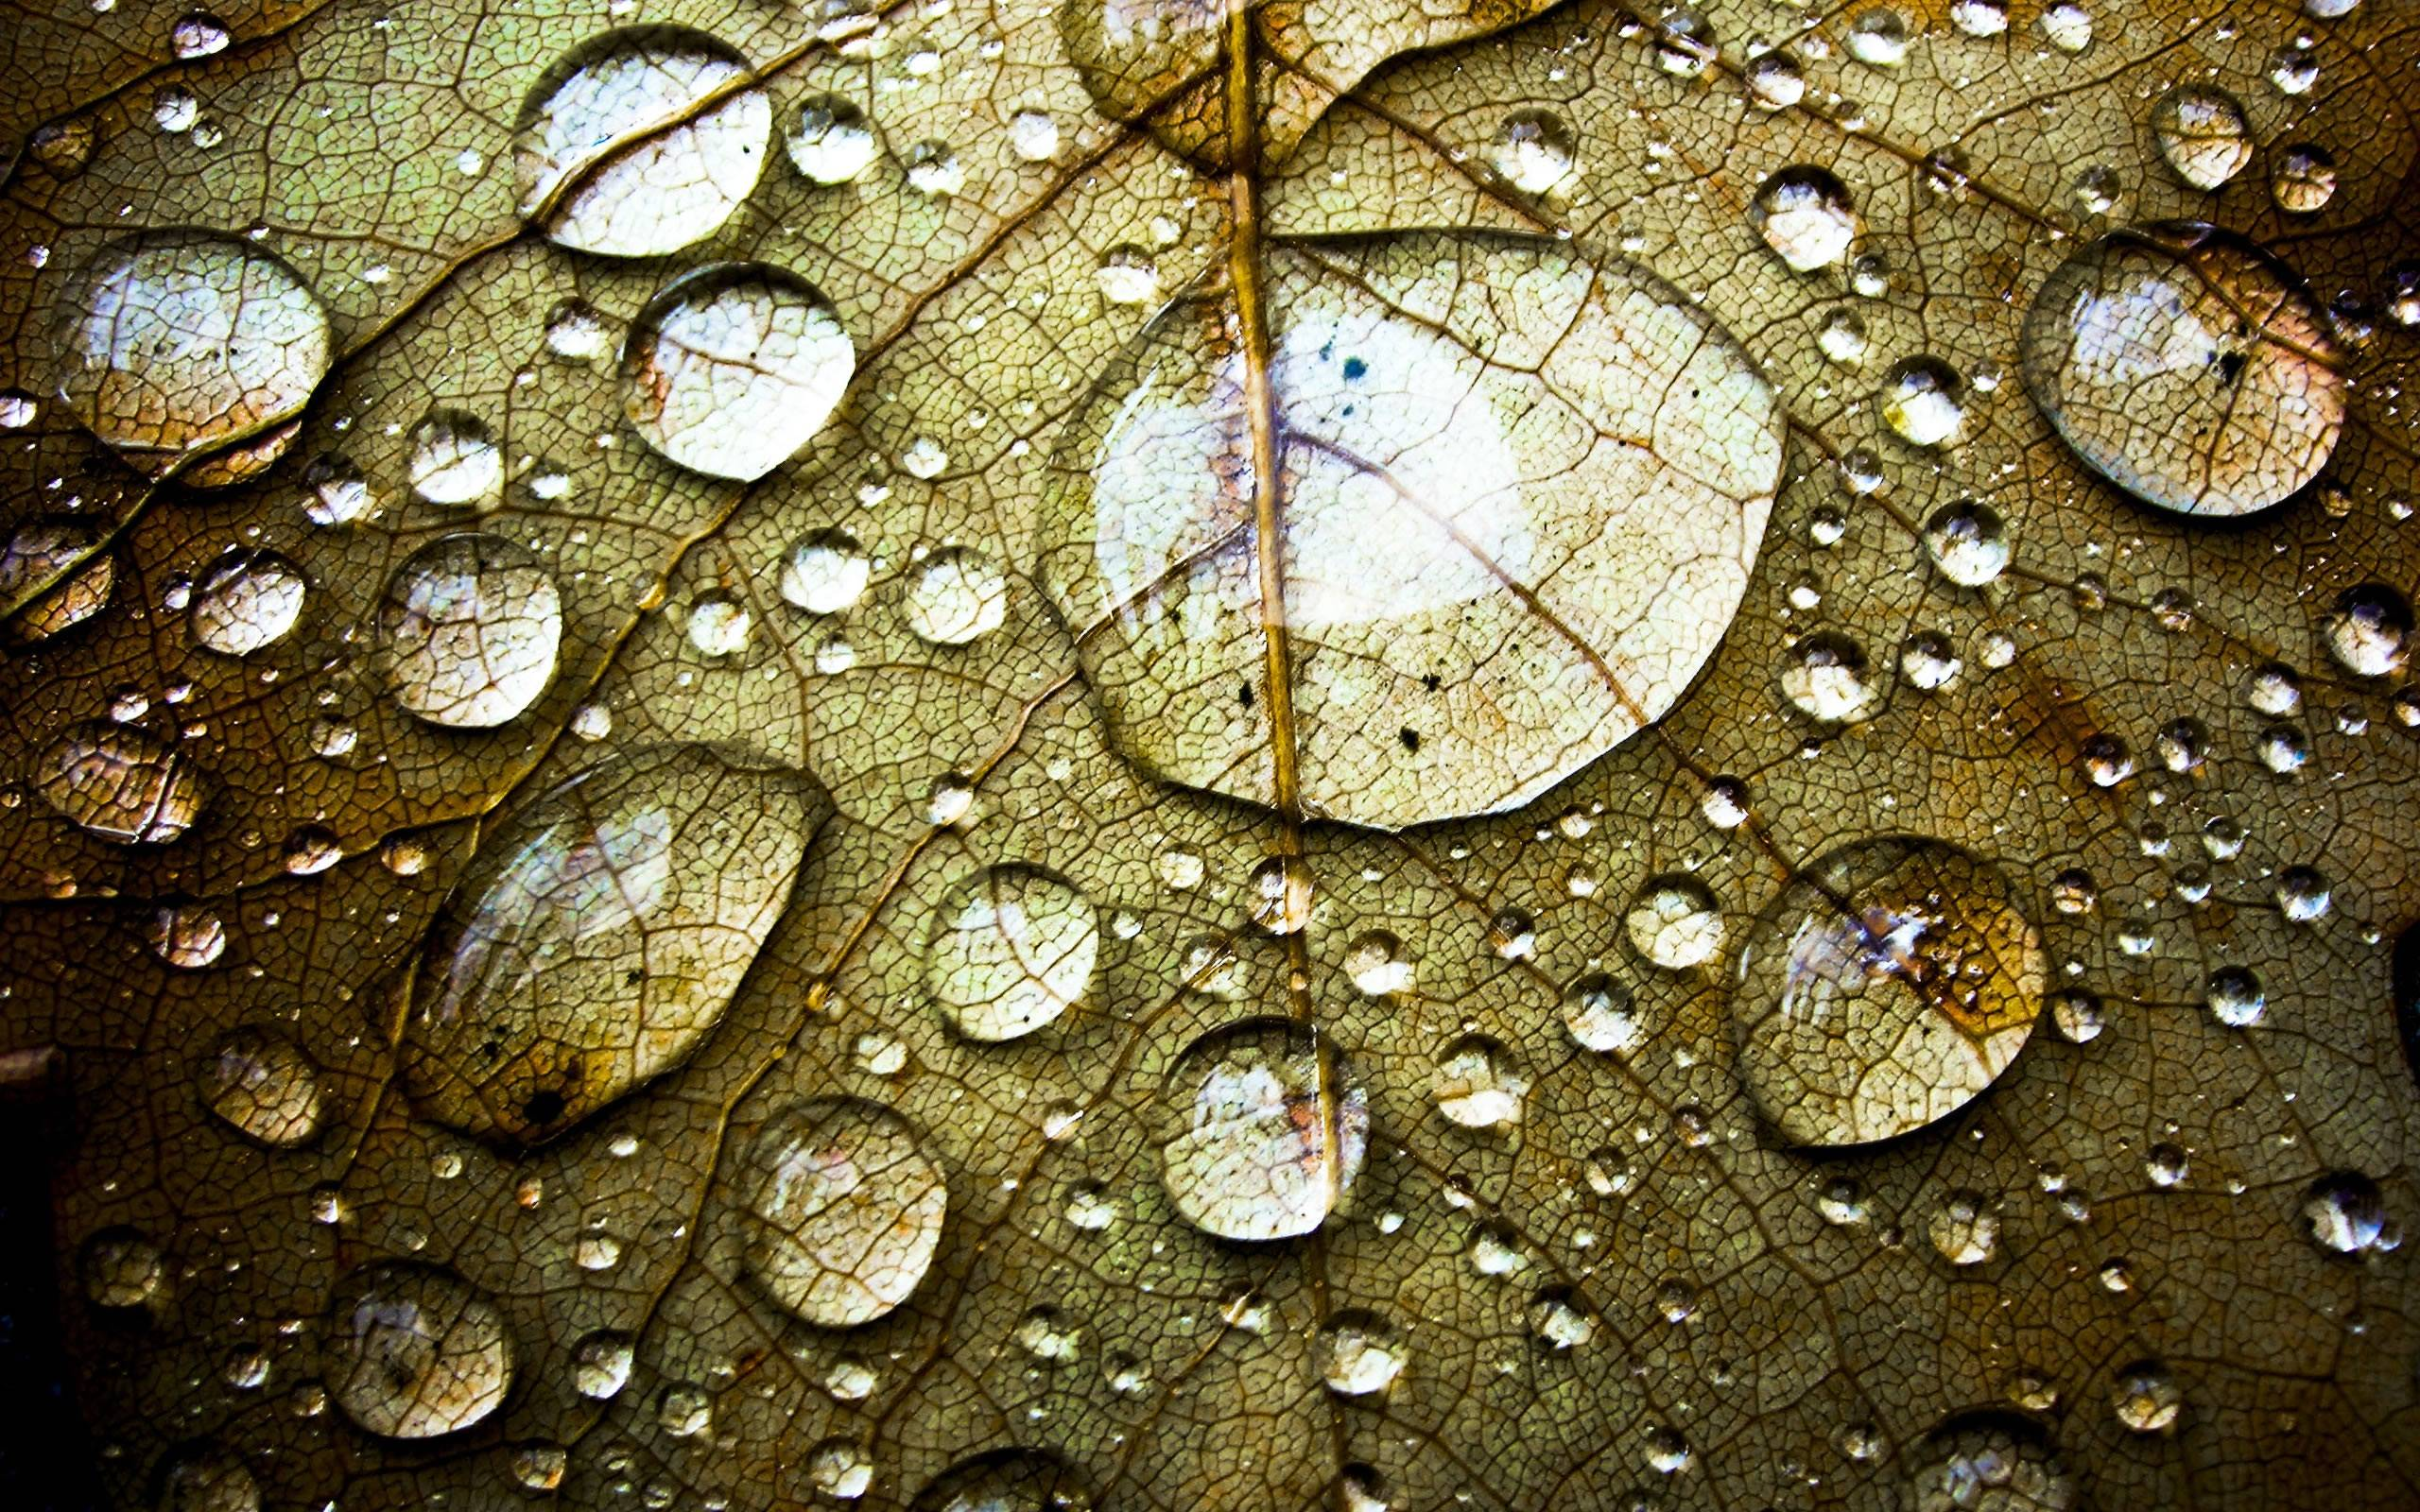 hd wallpapers water drops - photo #14